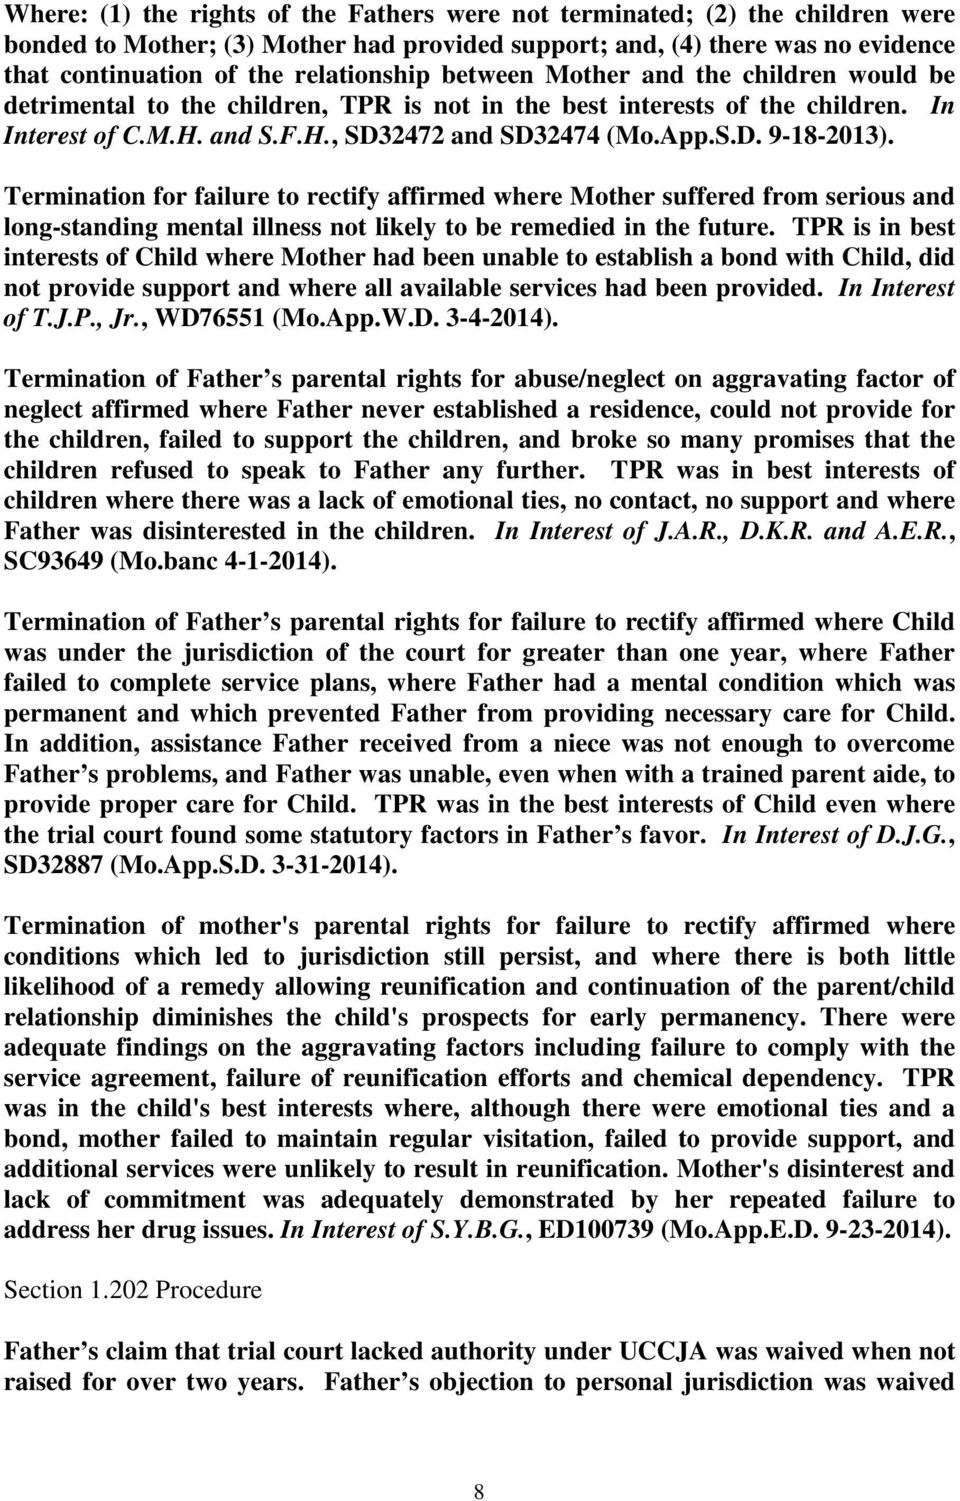 Termination for failure to rectify affirmed where Mother suffered from serious and long-standing mental illness not likely to be remedied in the future.